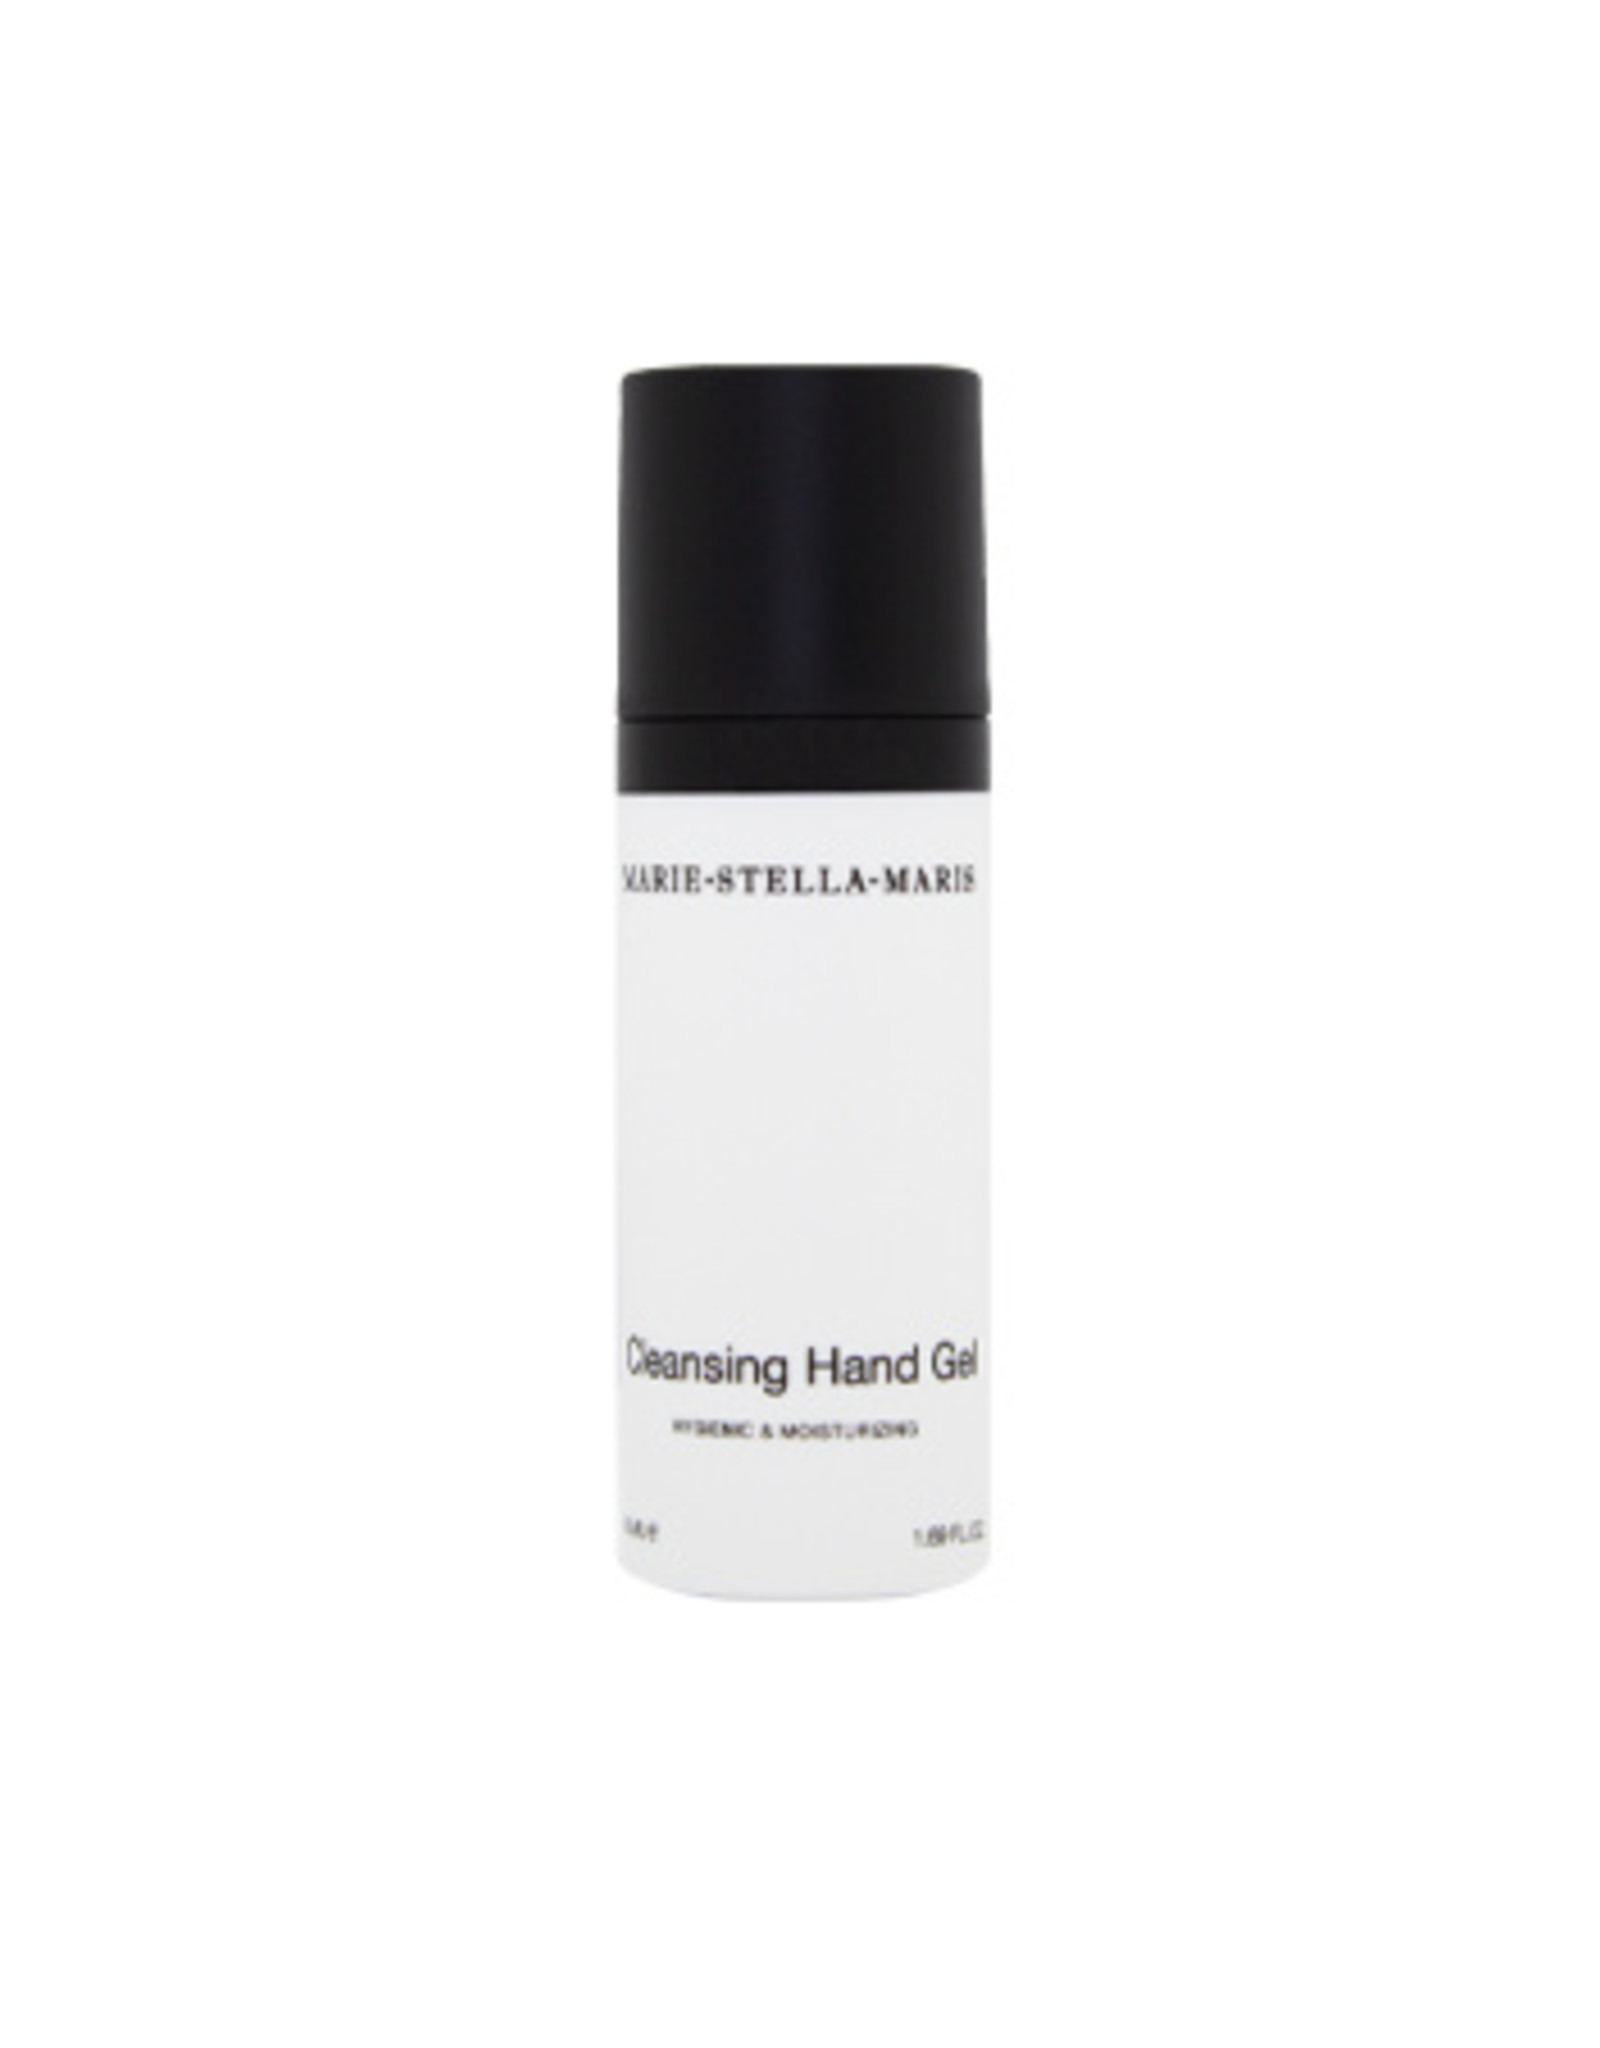 Marie-Stella-Maris Cleansing Handgel 50ml